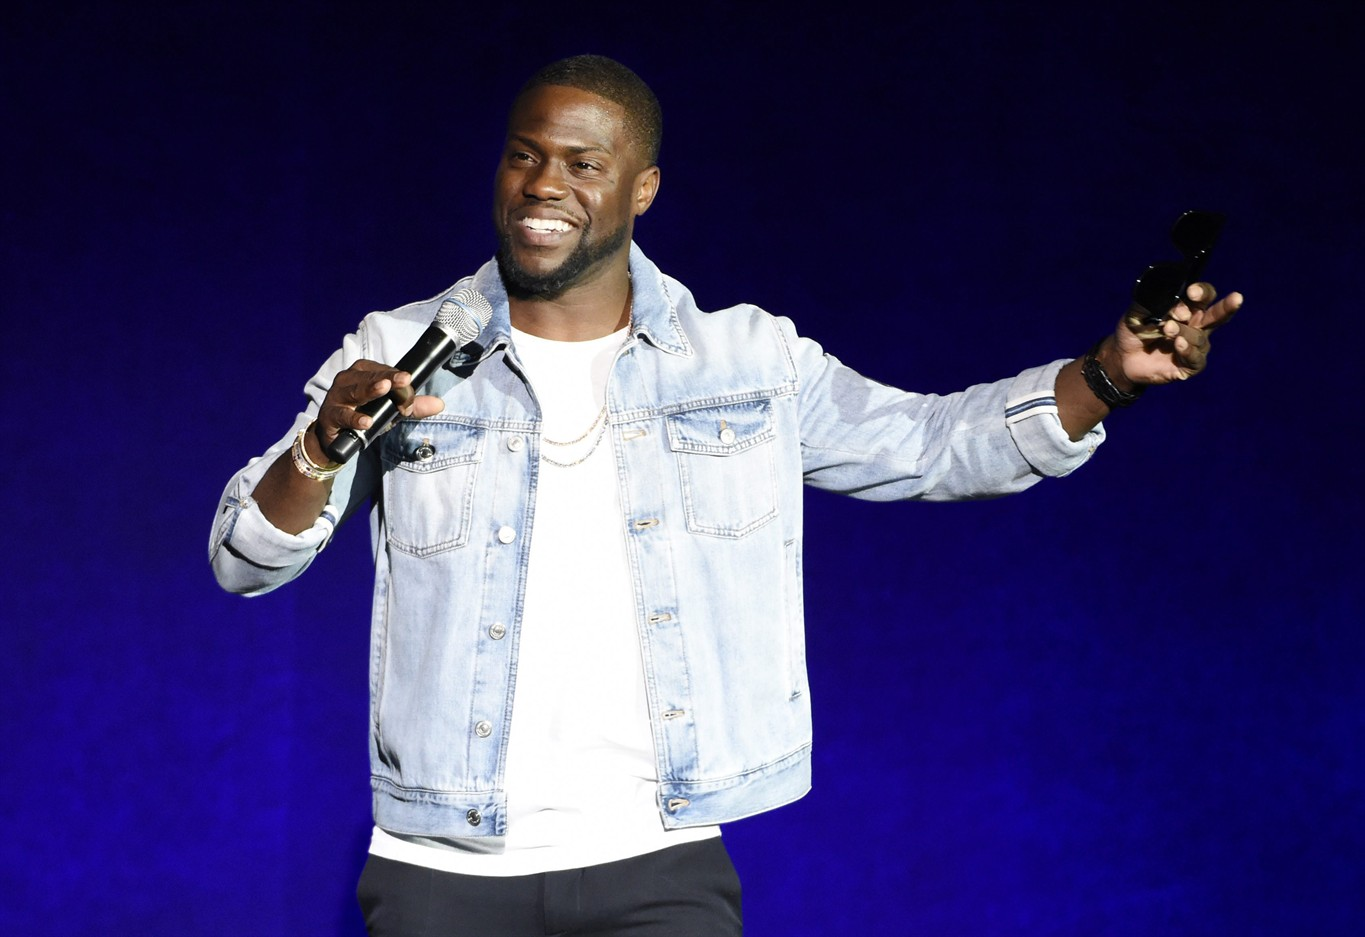 Philadelphia honors Kevin Hart with cheesesteak shop mural